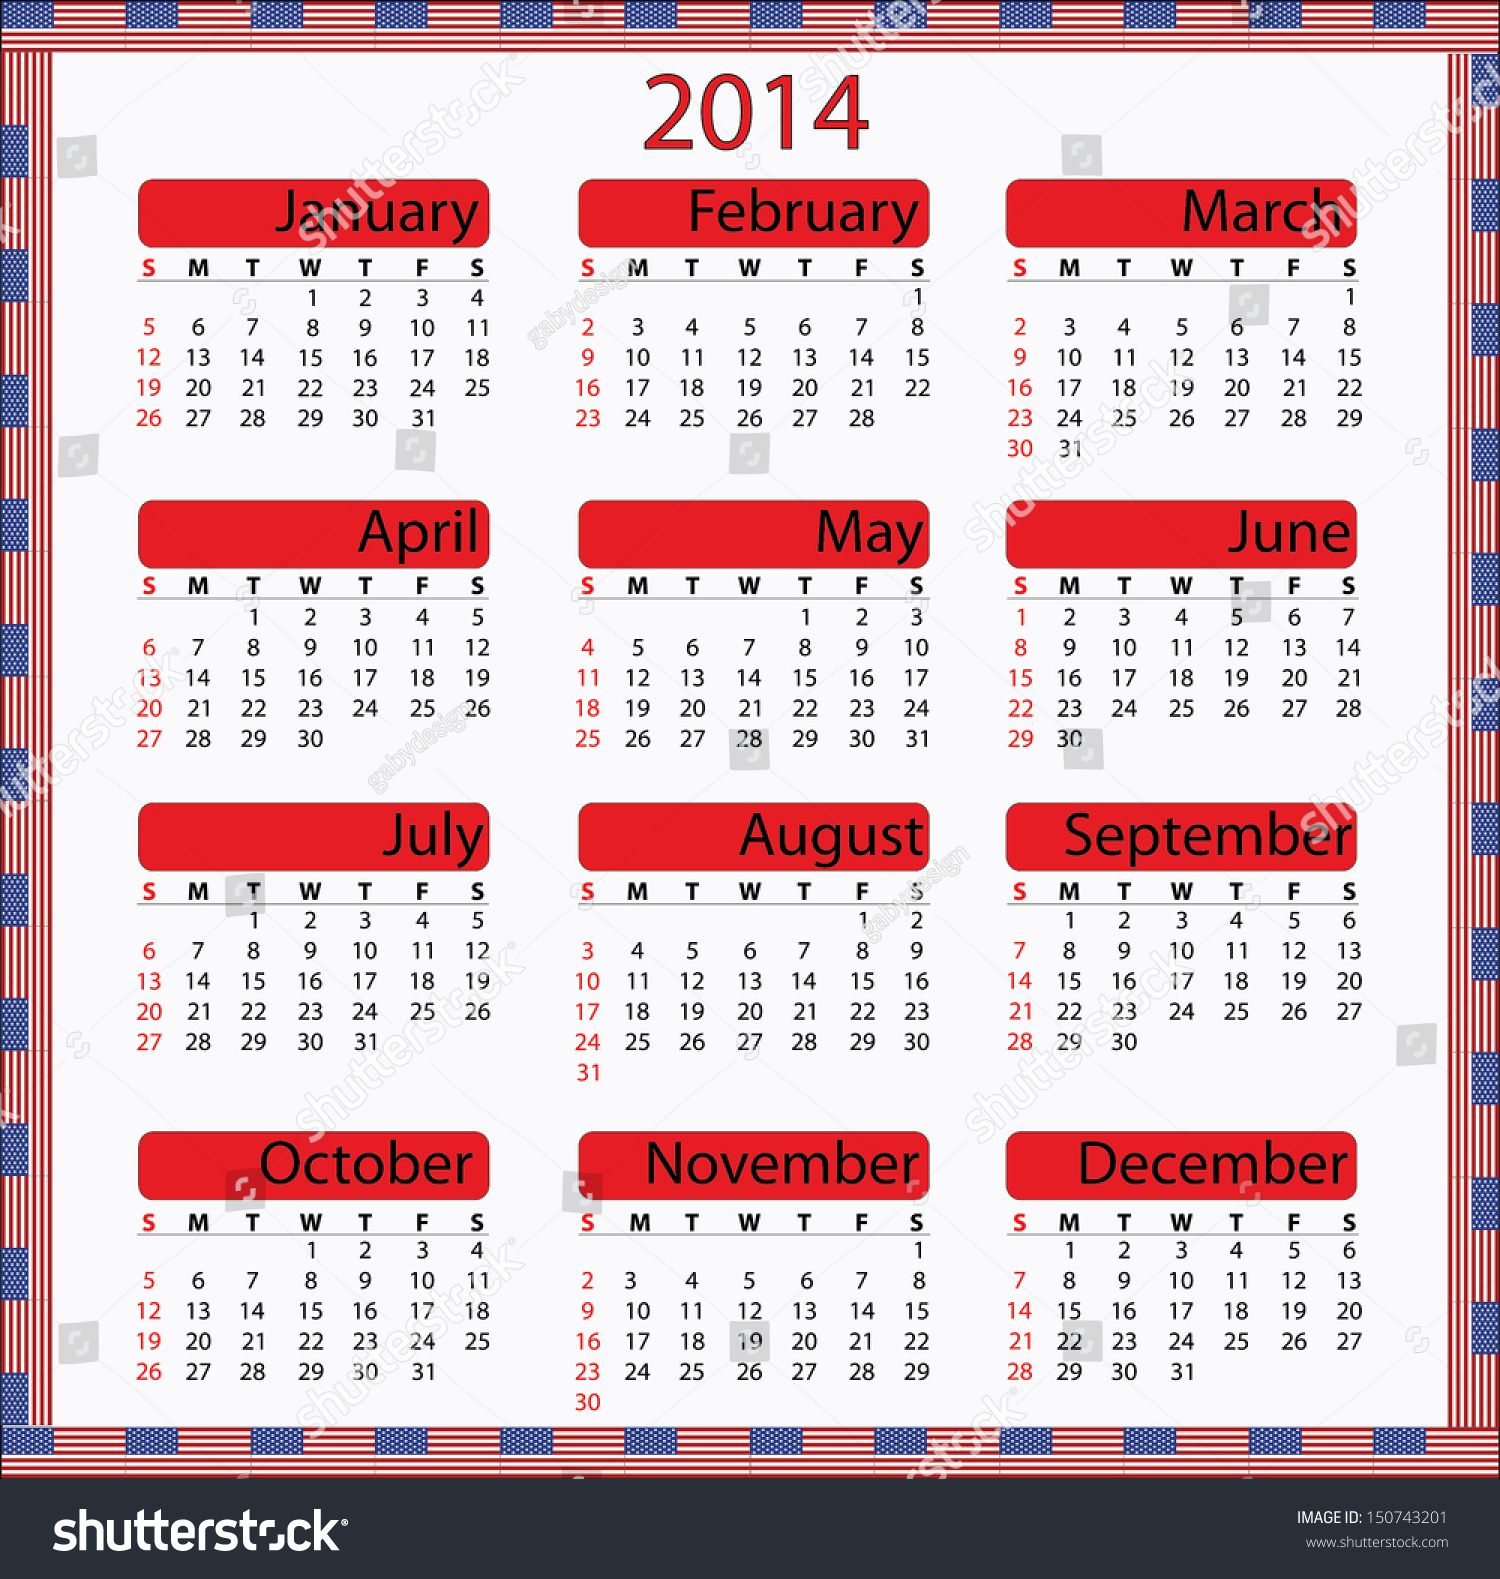 Monthly Calendar Usa : Usa flag calendar abstract vector illustration